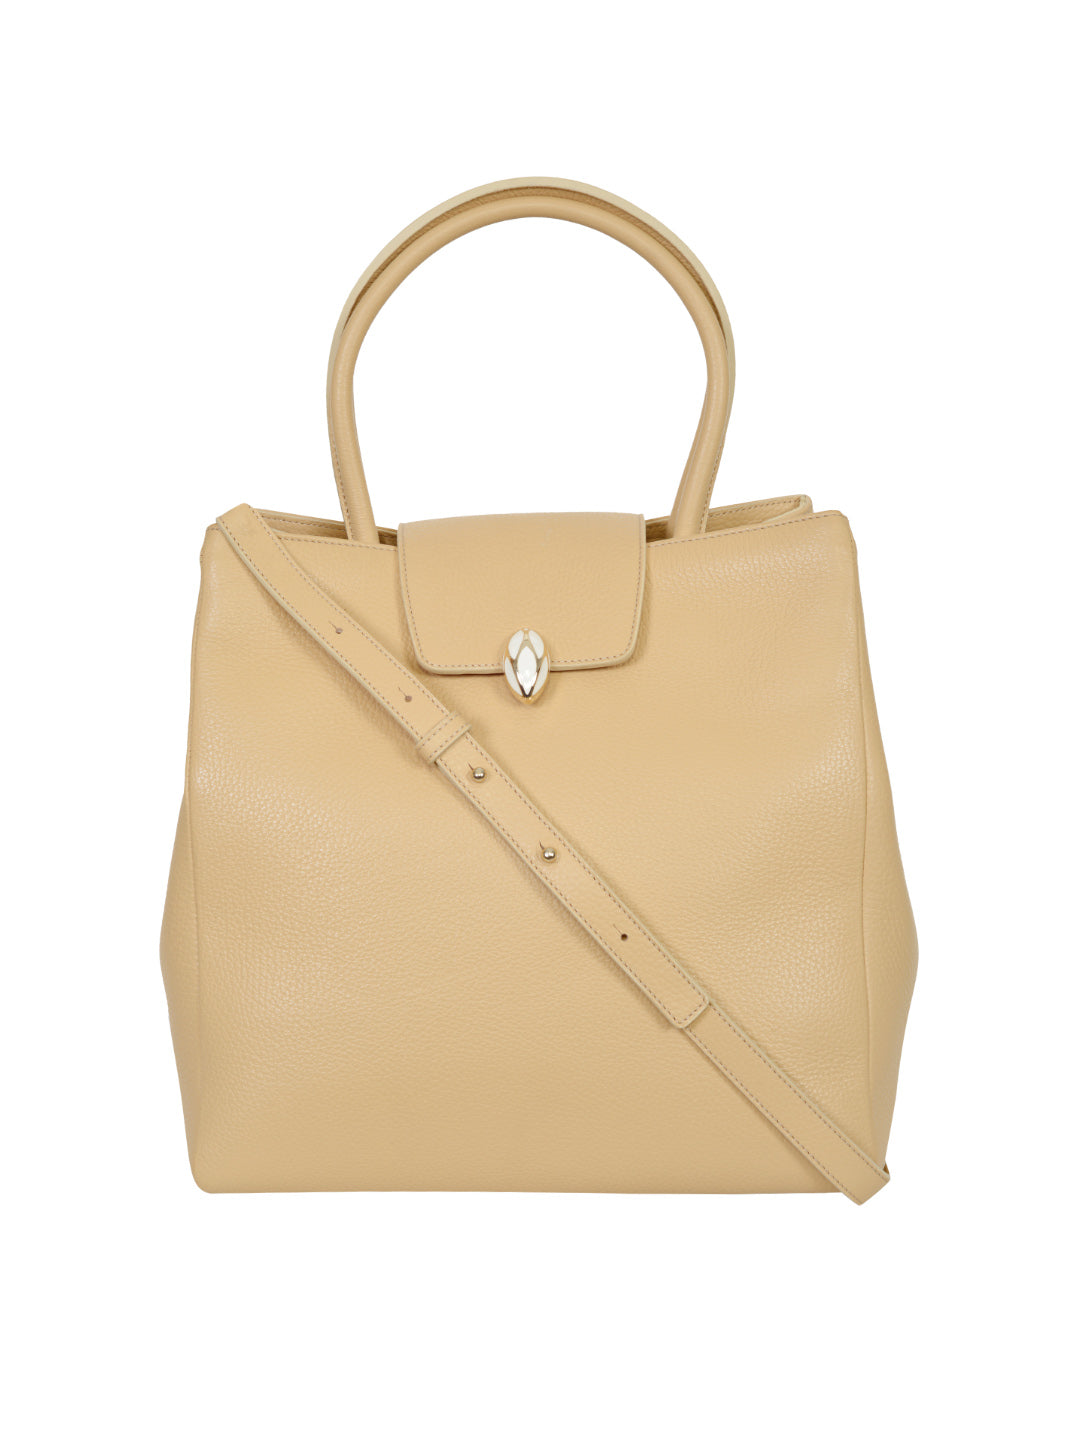 F.E.V BY FRANCESCA VERSACE LEATHER CITY TOTE BAG